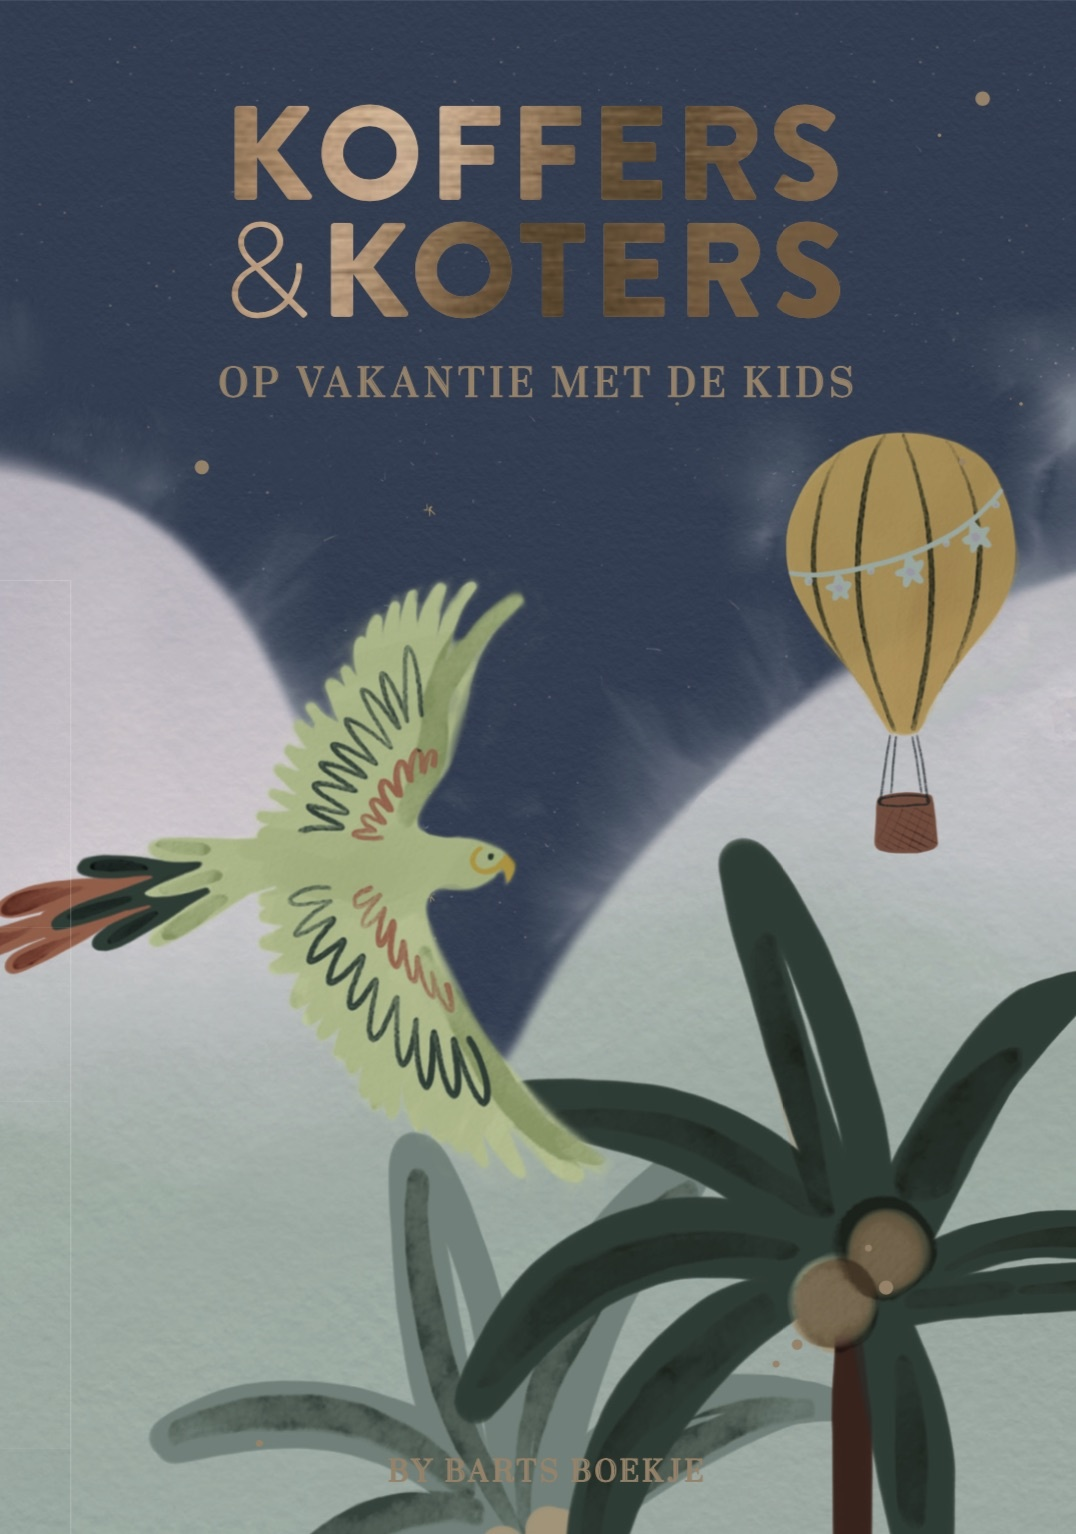 Koffers & Koters-1